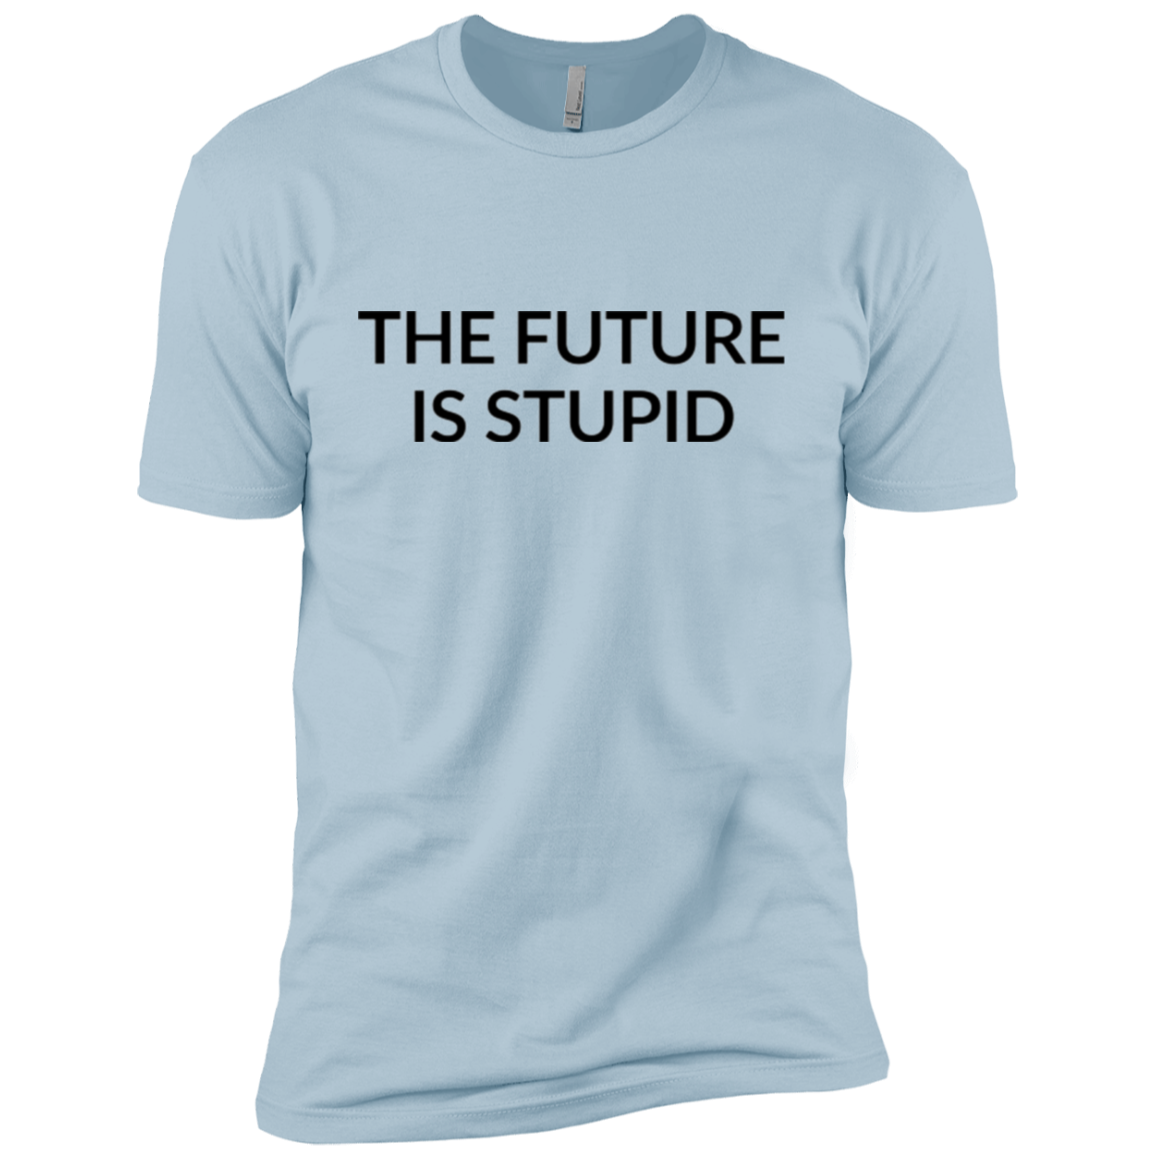 The Future is Stupid Men's Classic Tee